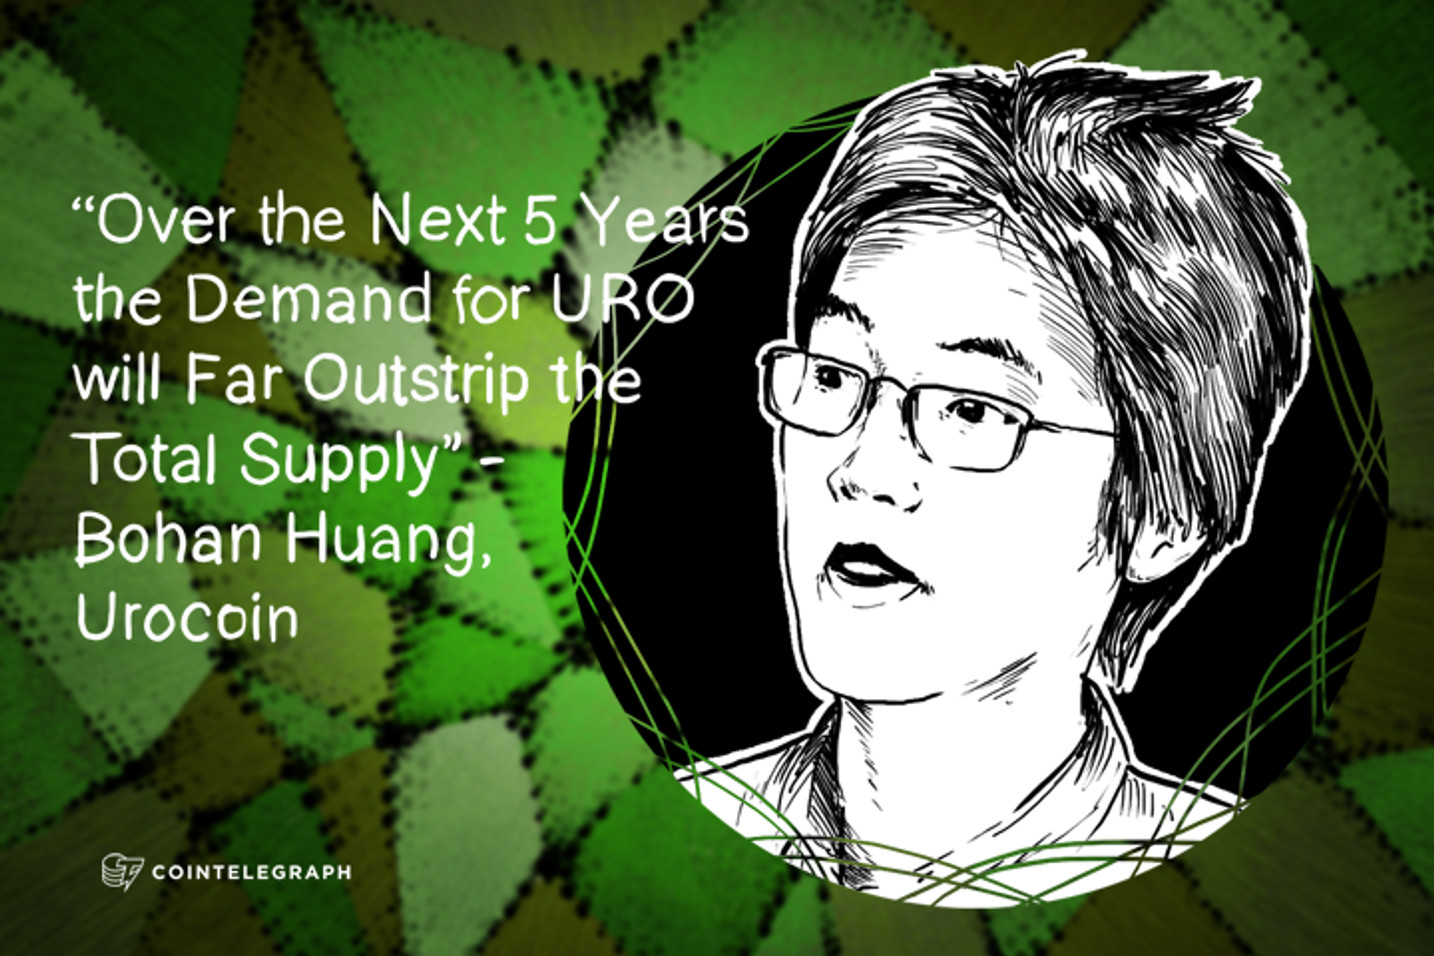 """Over the Next 5 Years the Demand for URO will Far Outstrip the Total Supply"" - Bohan Huang, Urocoin"